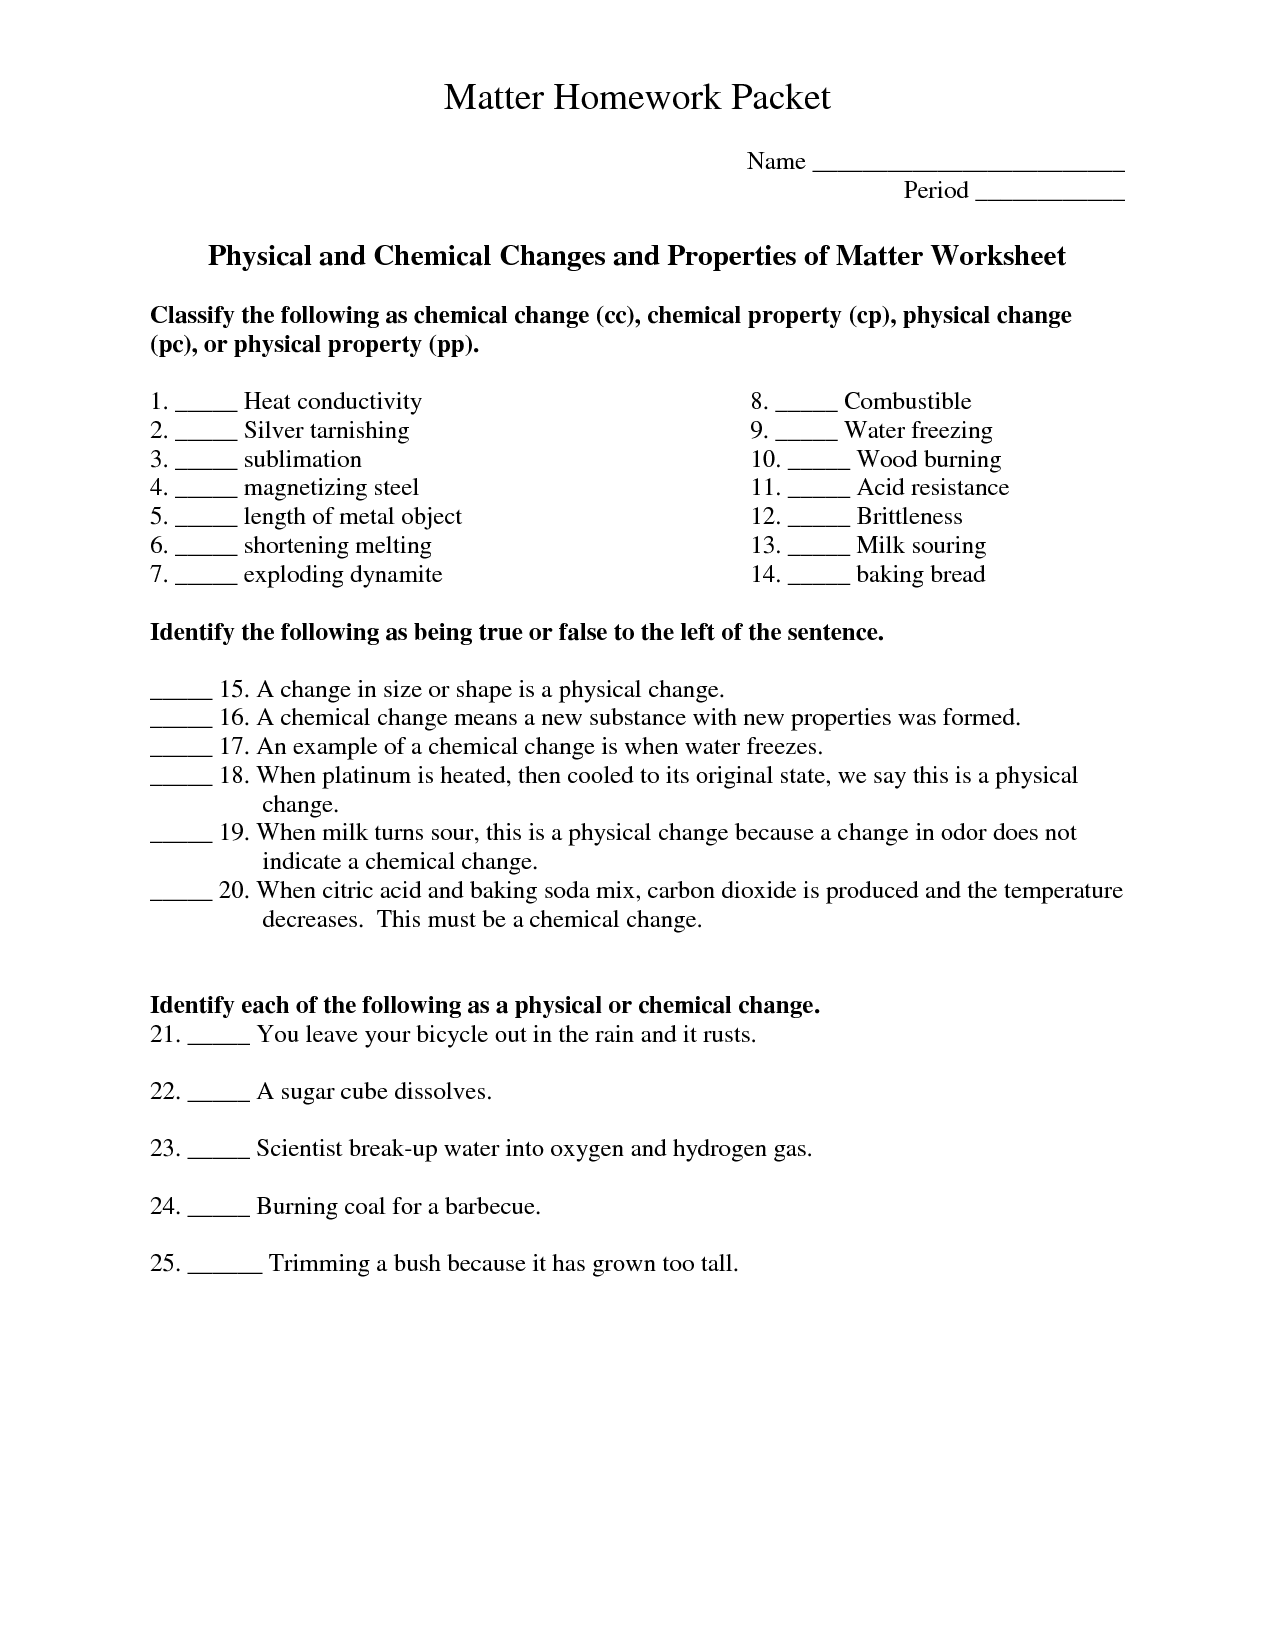 31 Section 1 Composition Of Matter Worksheet Answers